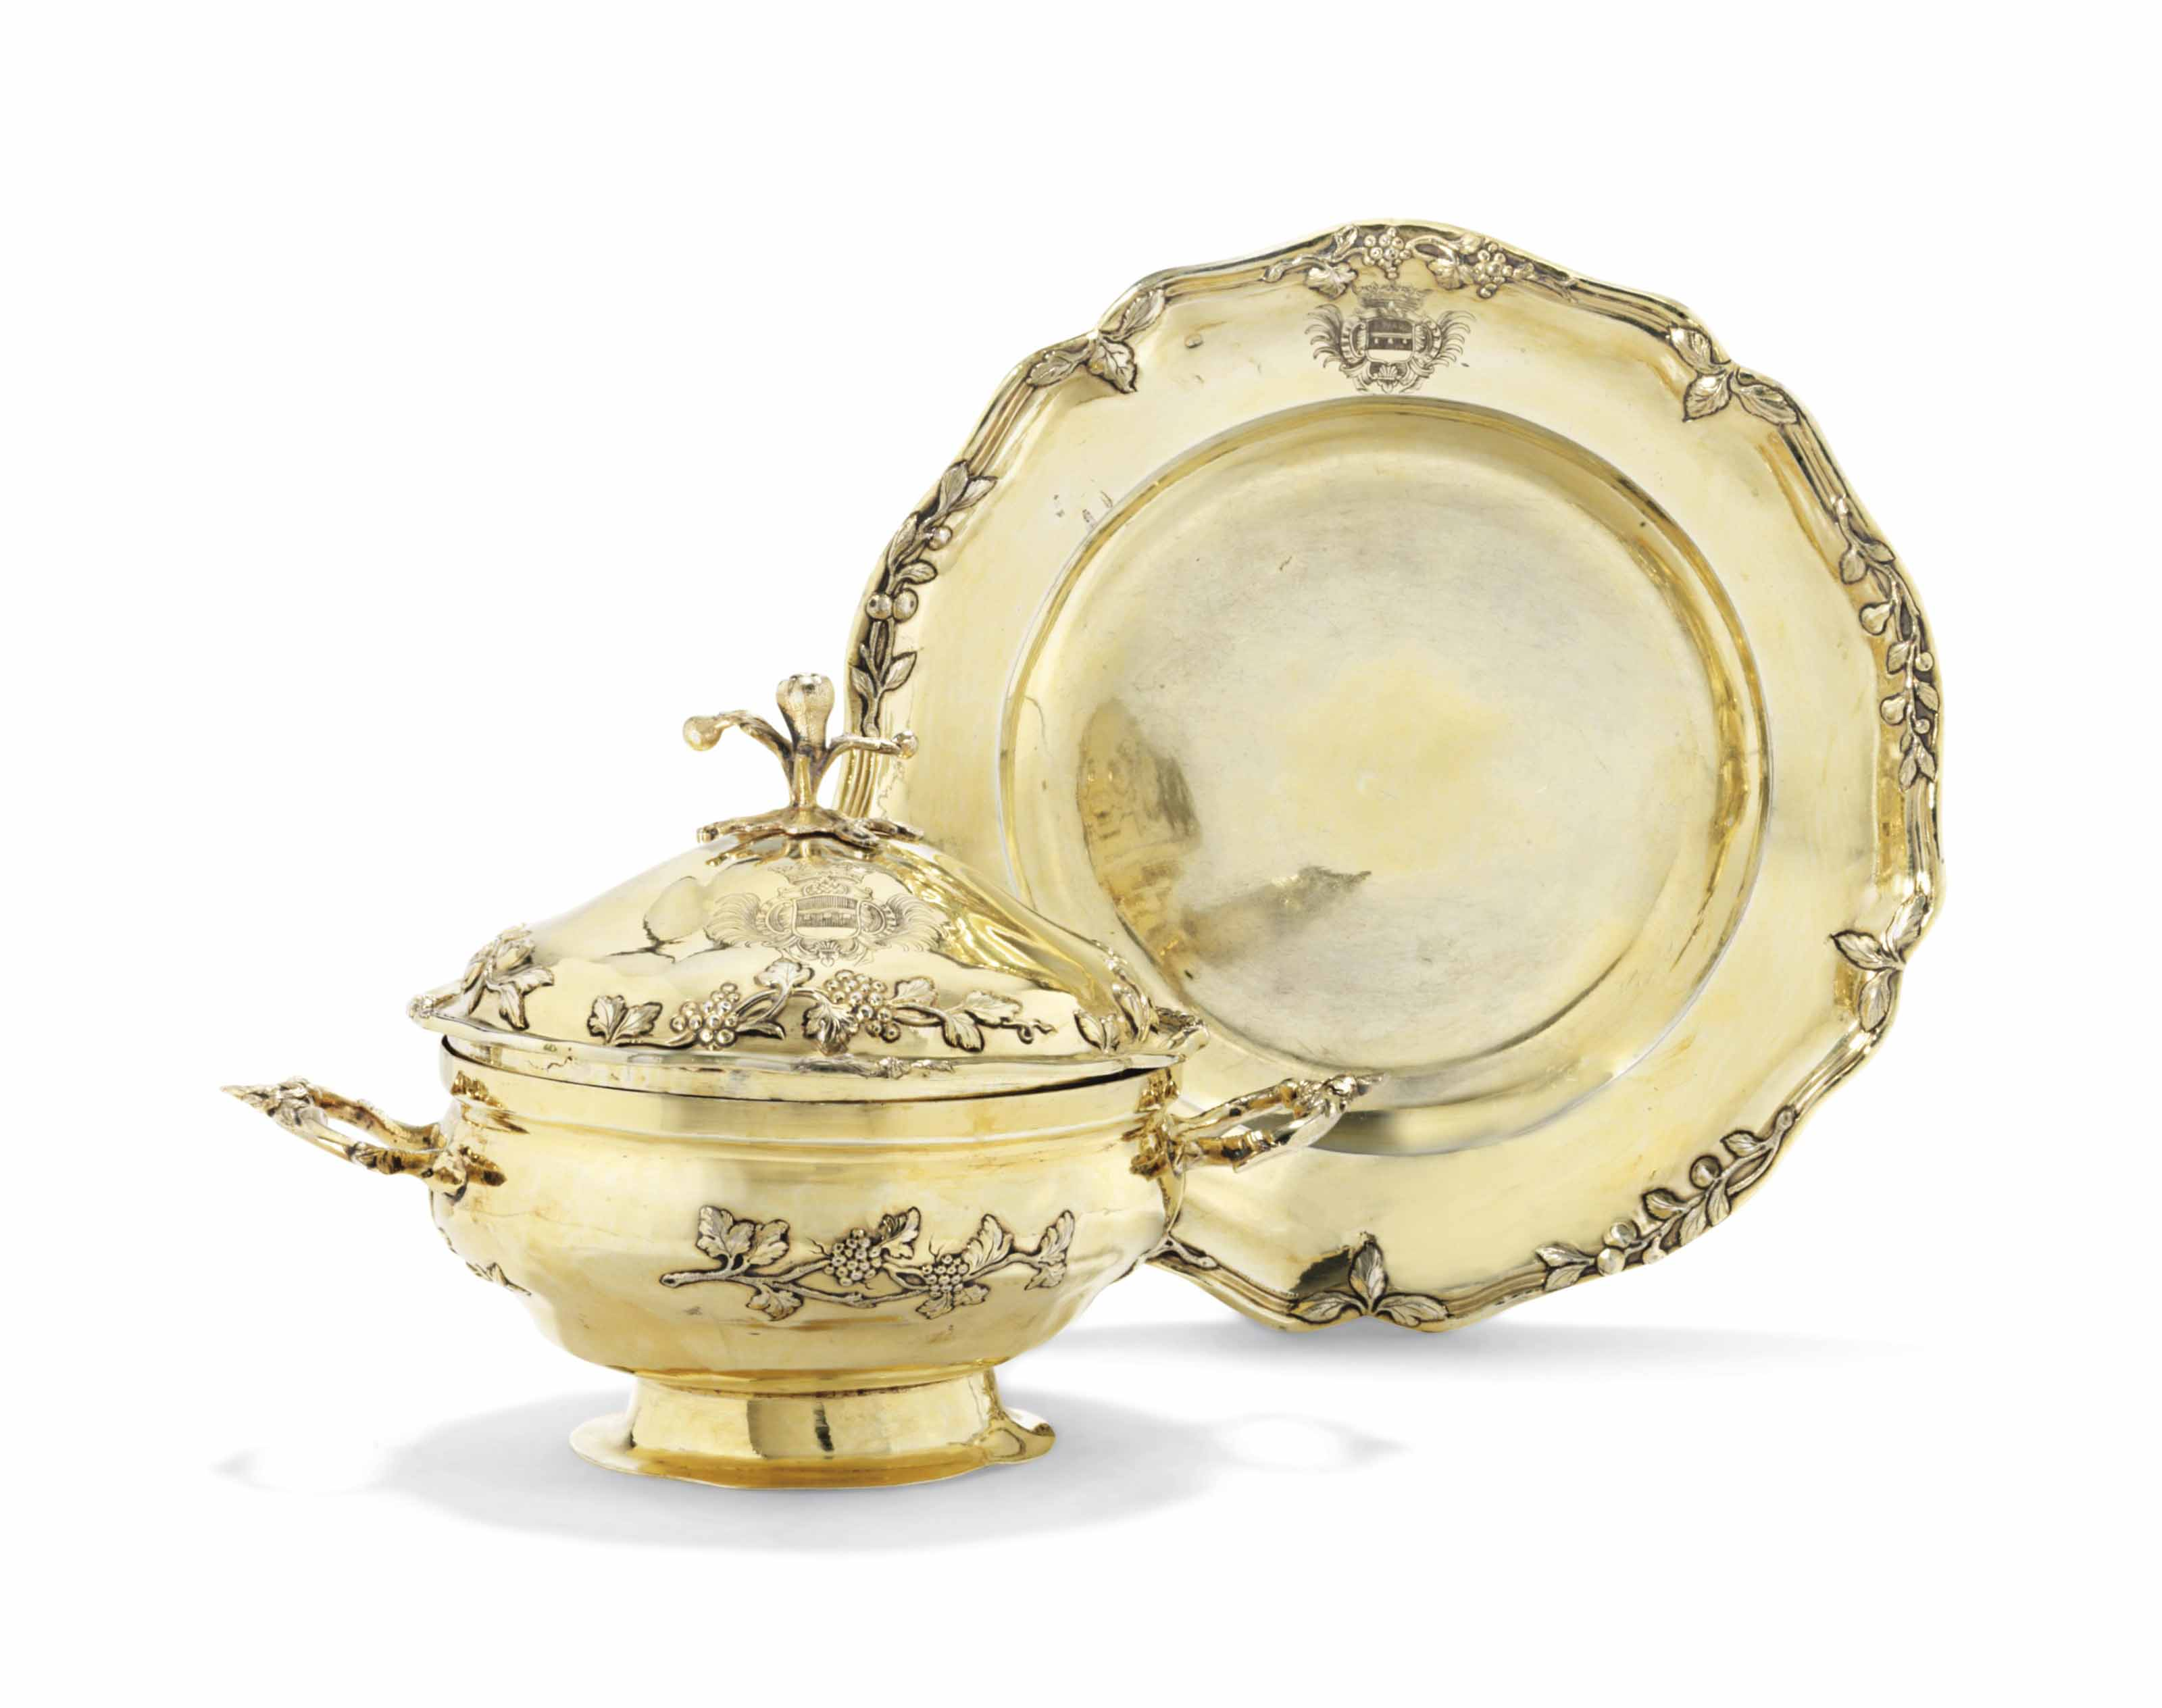 A GERMAN SILVER-GILT ECUELLE, COVER AND STAND